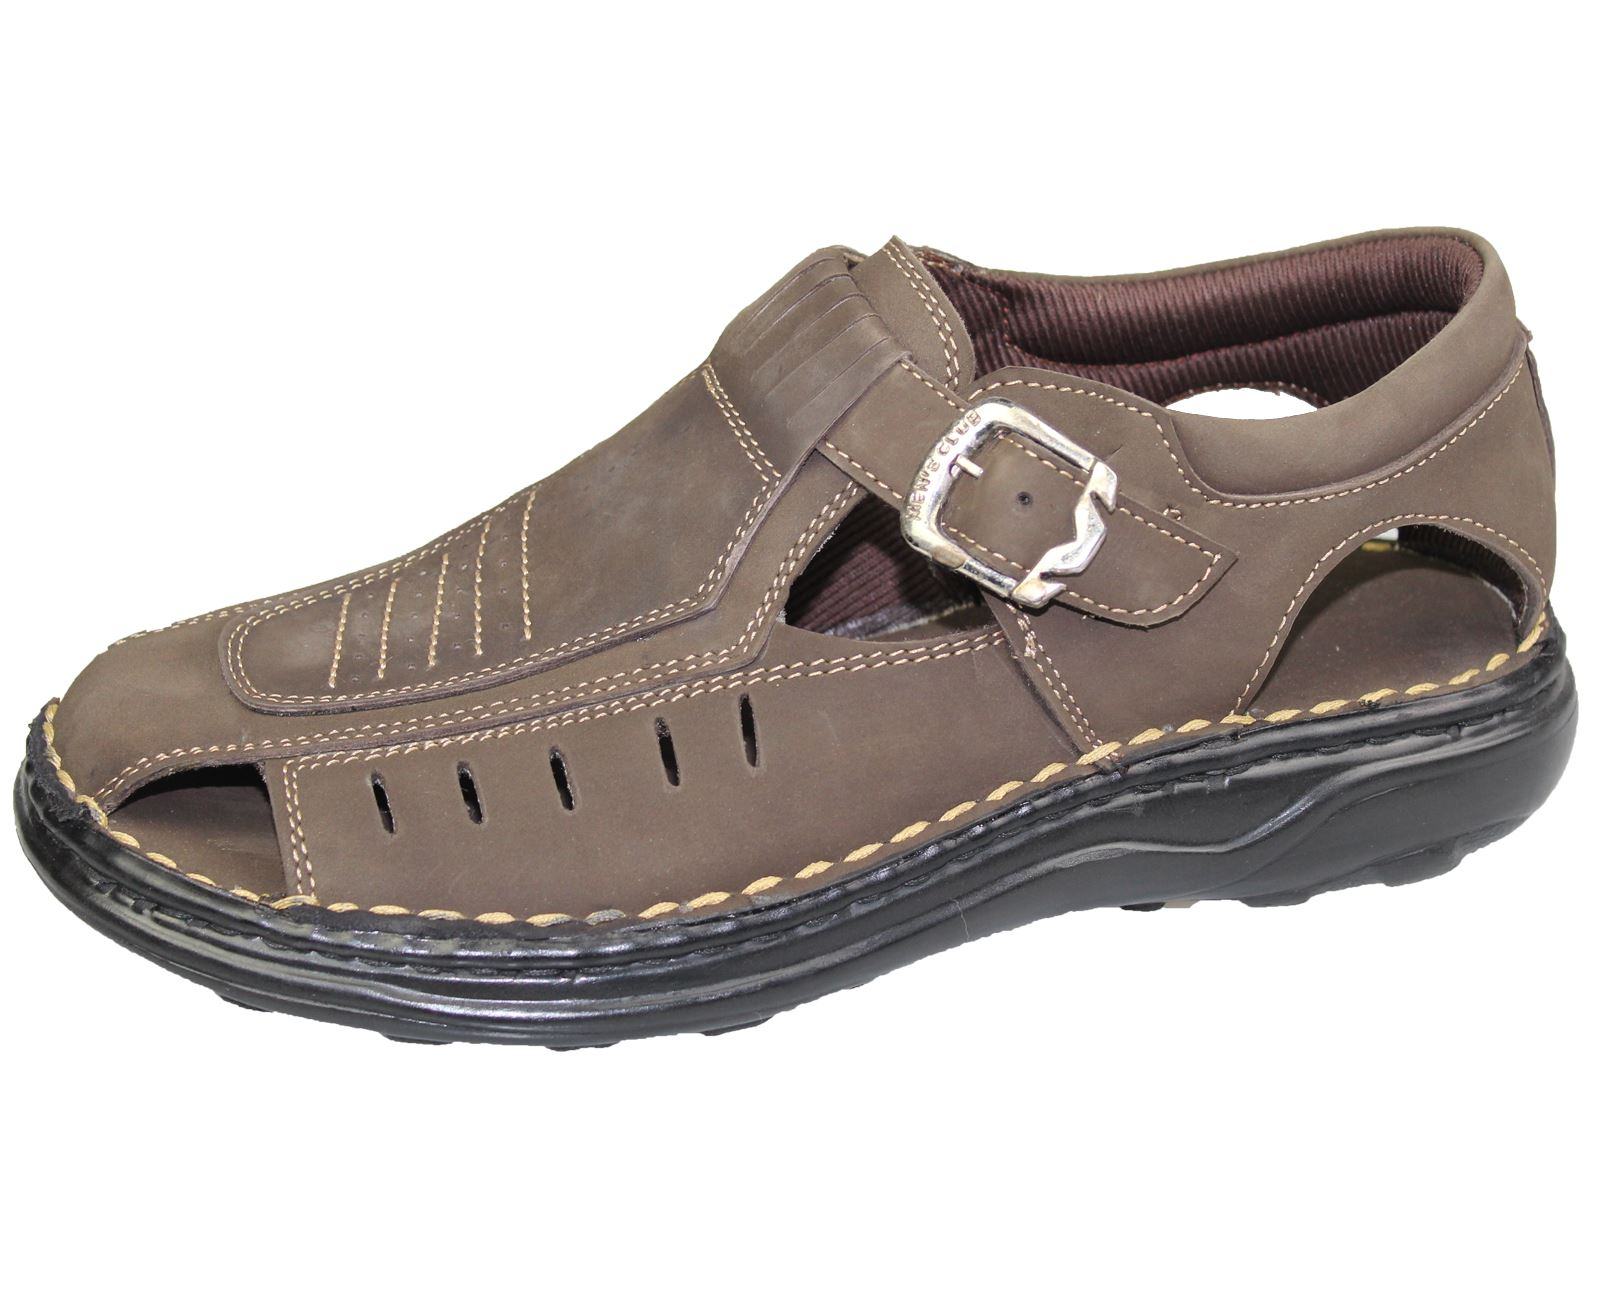 mens sandals wide fit nubuck leather summer fashion mules